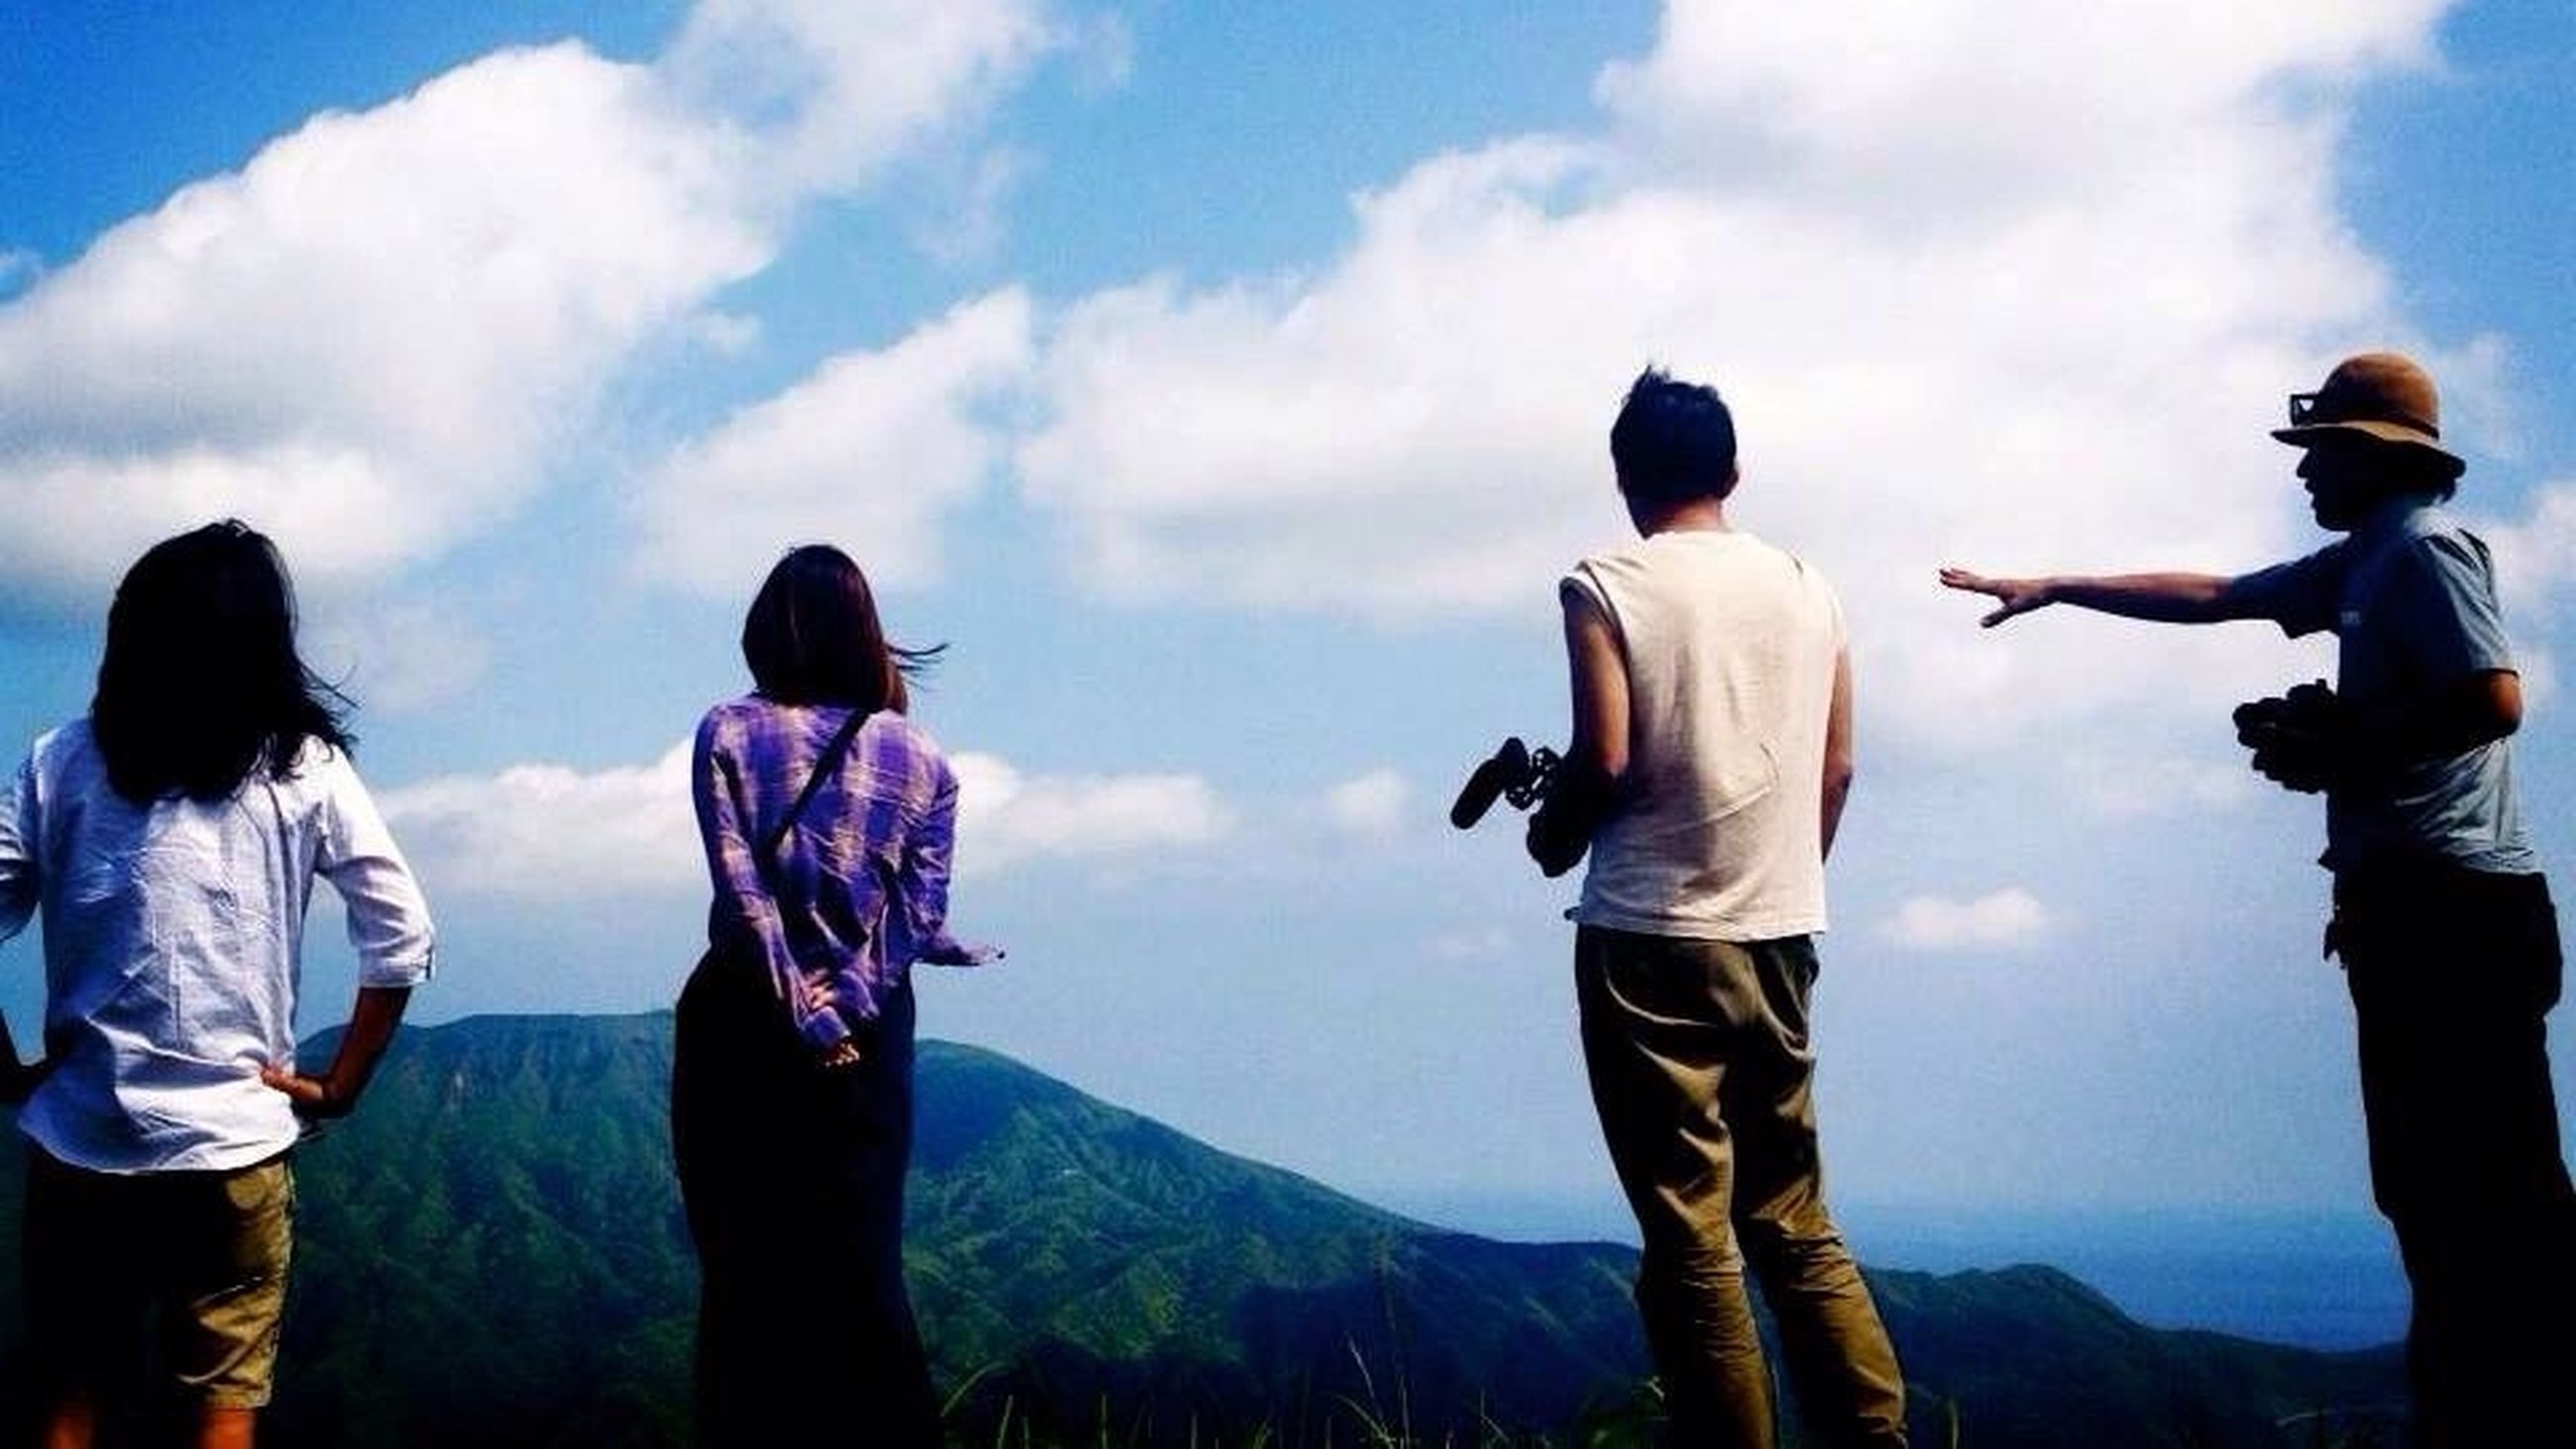 lifestyles, leisure activity, sky, men, mountain, rear view, standing, togetherness, casual clothing, cloud - sky, full length, person, bonding, nature, cloud, three quarter length